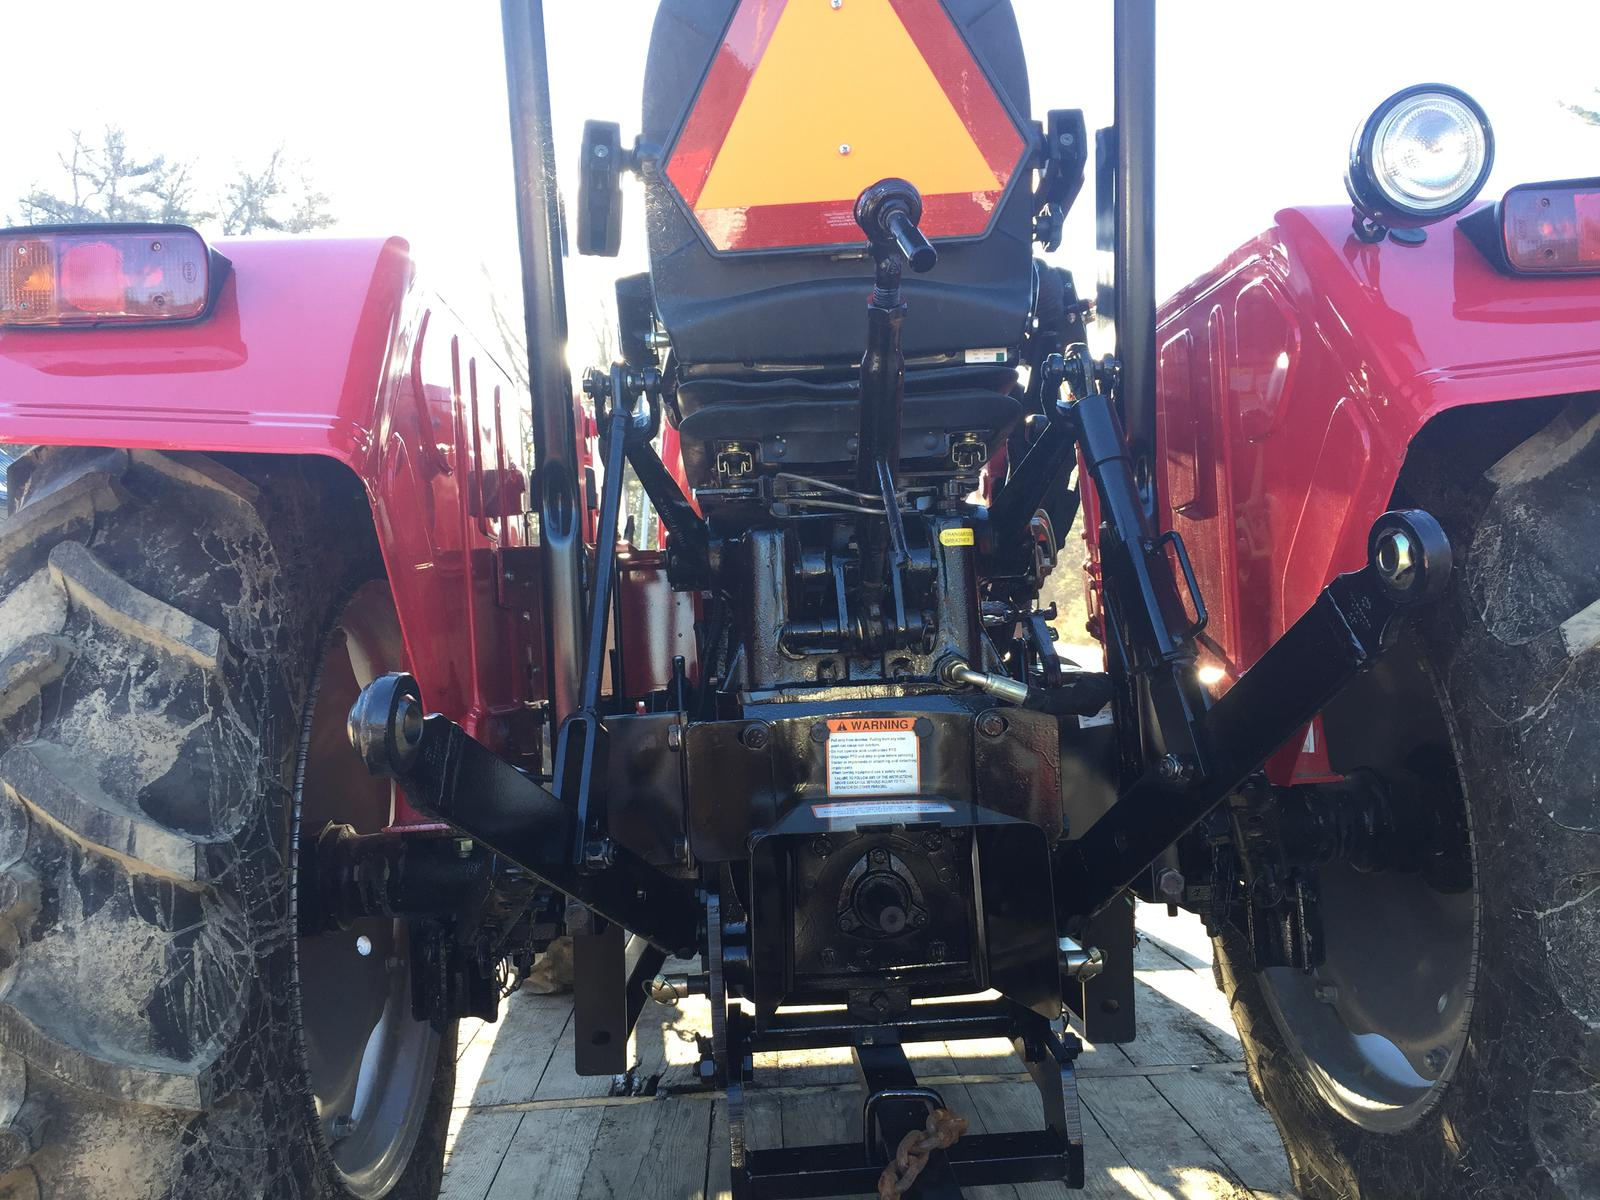 Mahindra 4540 4x4 Tractor w/ Loader for sale in Belchertown